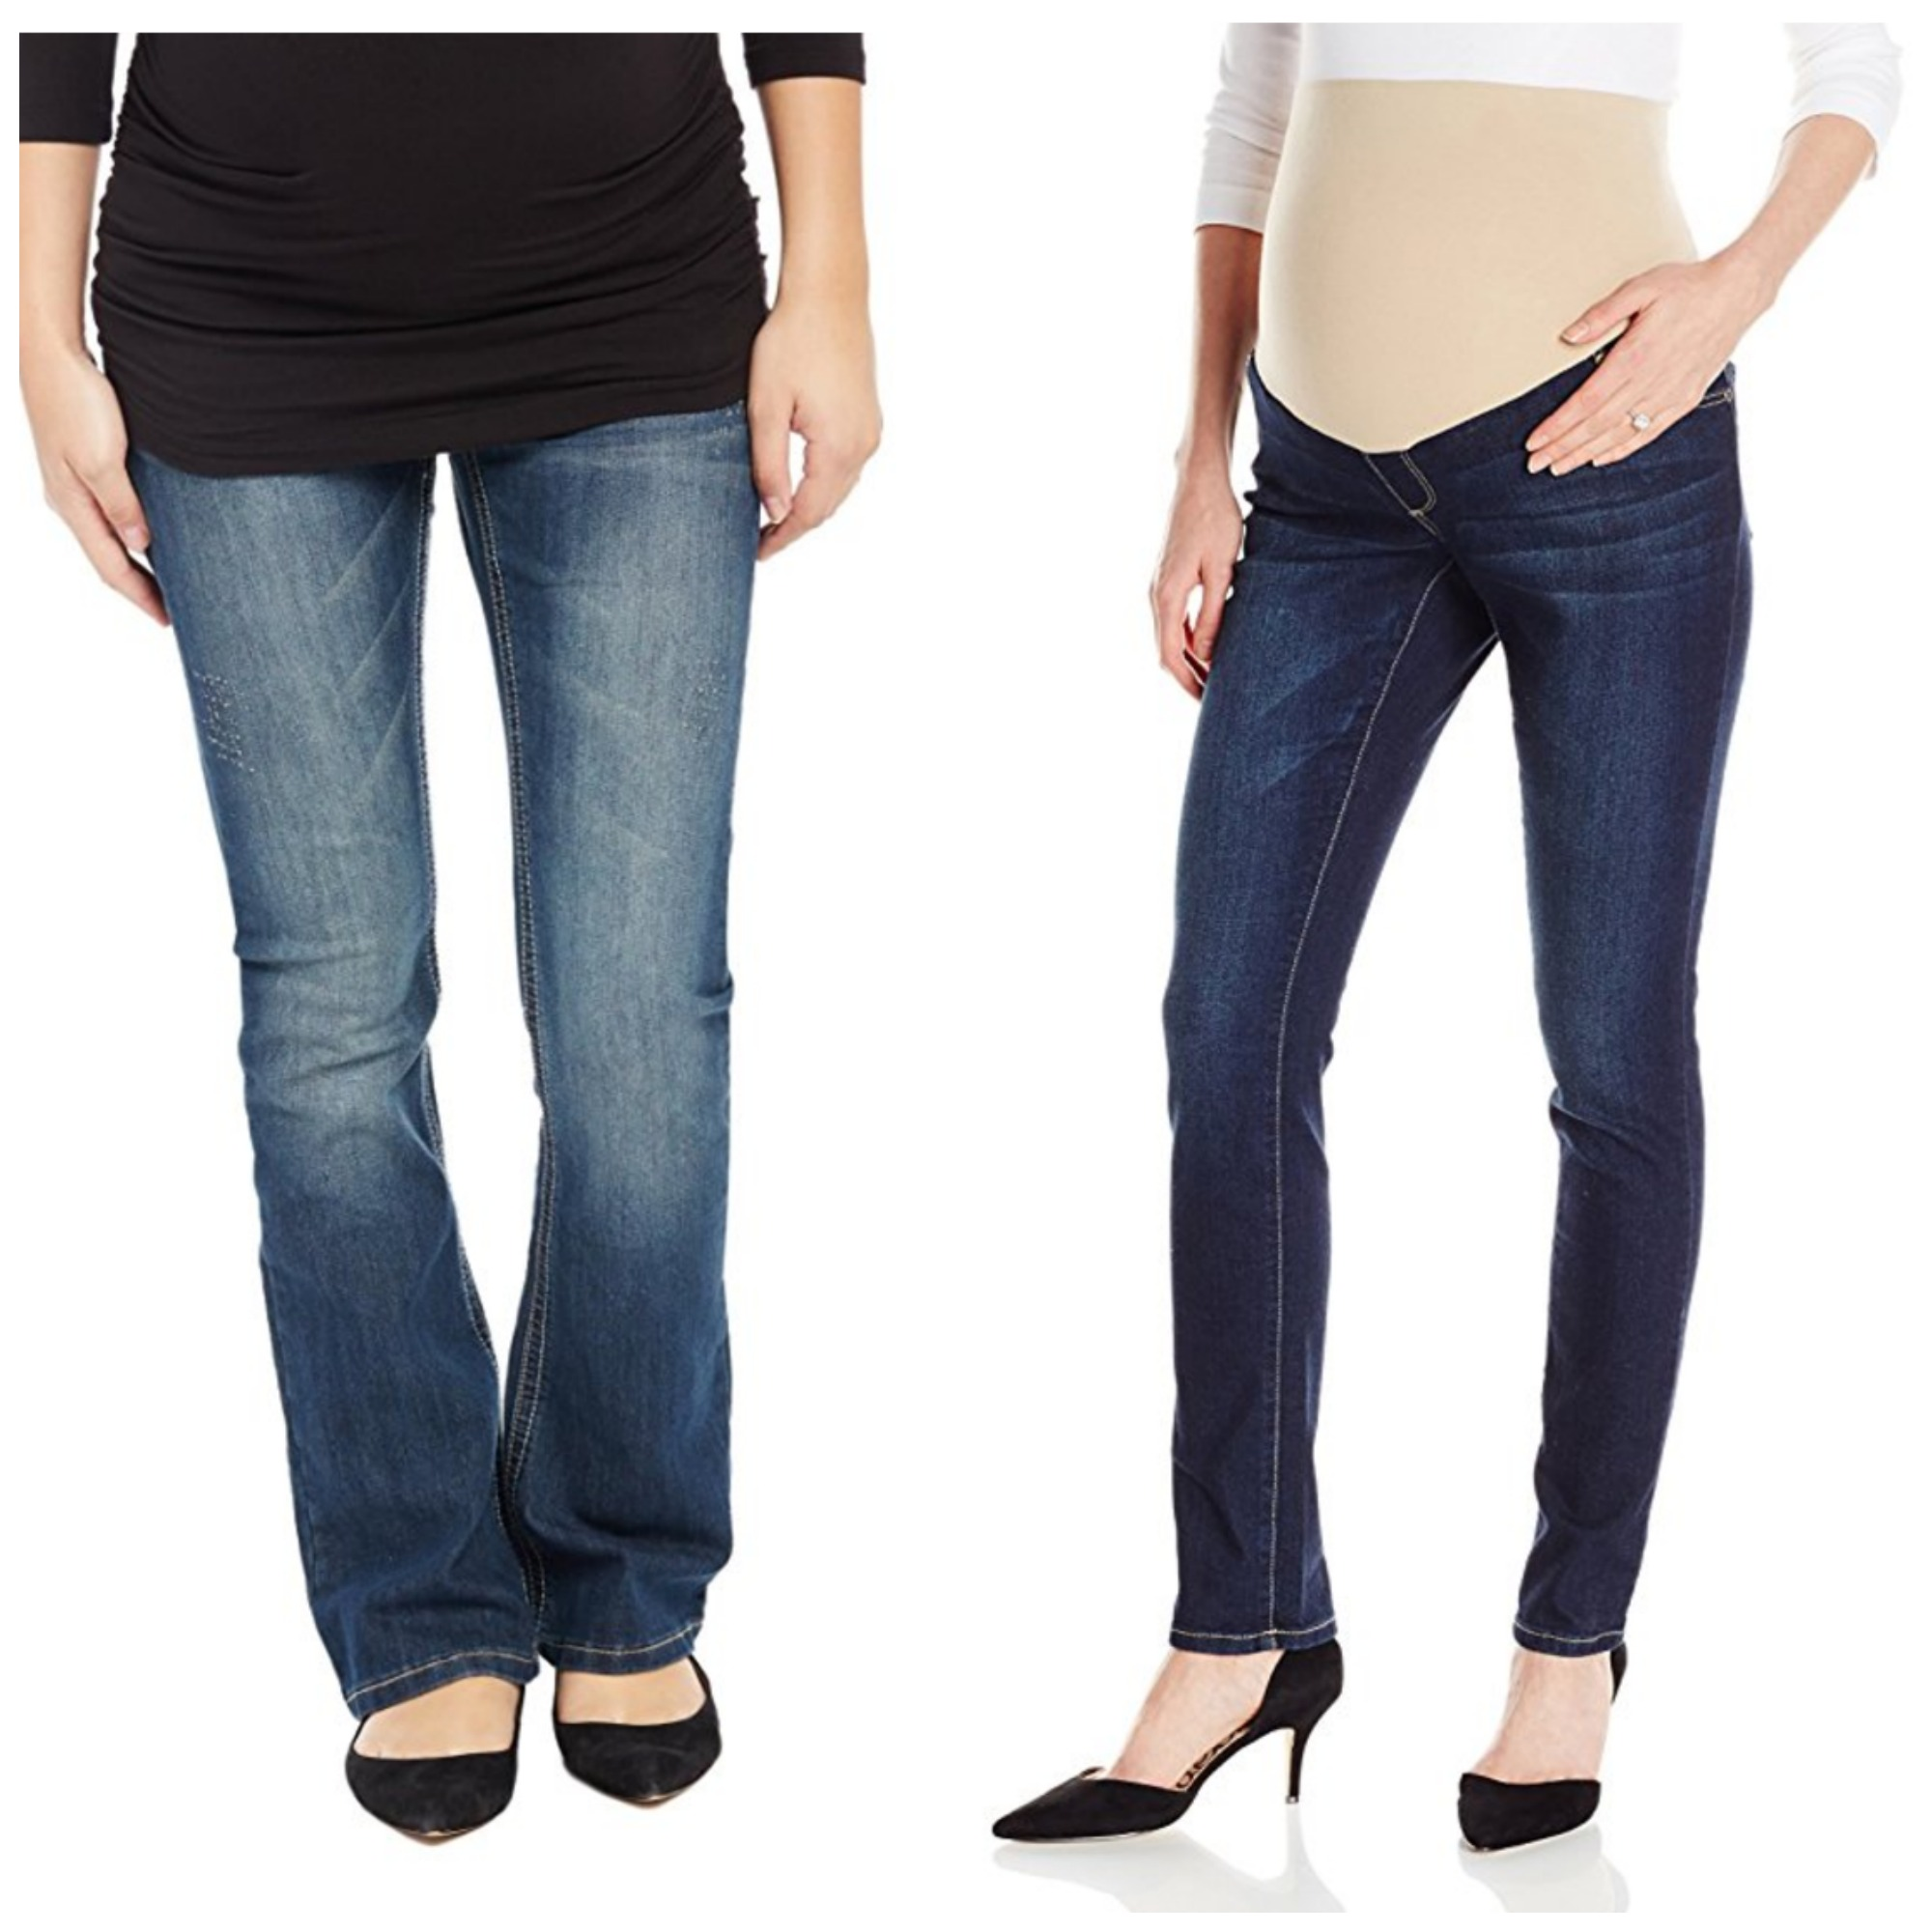 70ef5218f51c1 Left: Motherhood Secret Fit Belly Stitched Pocket Boot Cut Maternity Jeans,  $50 – these were our editor's favorite jeans for pregnancy; she wore them  ...